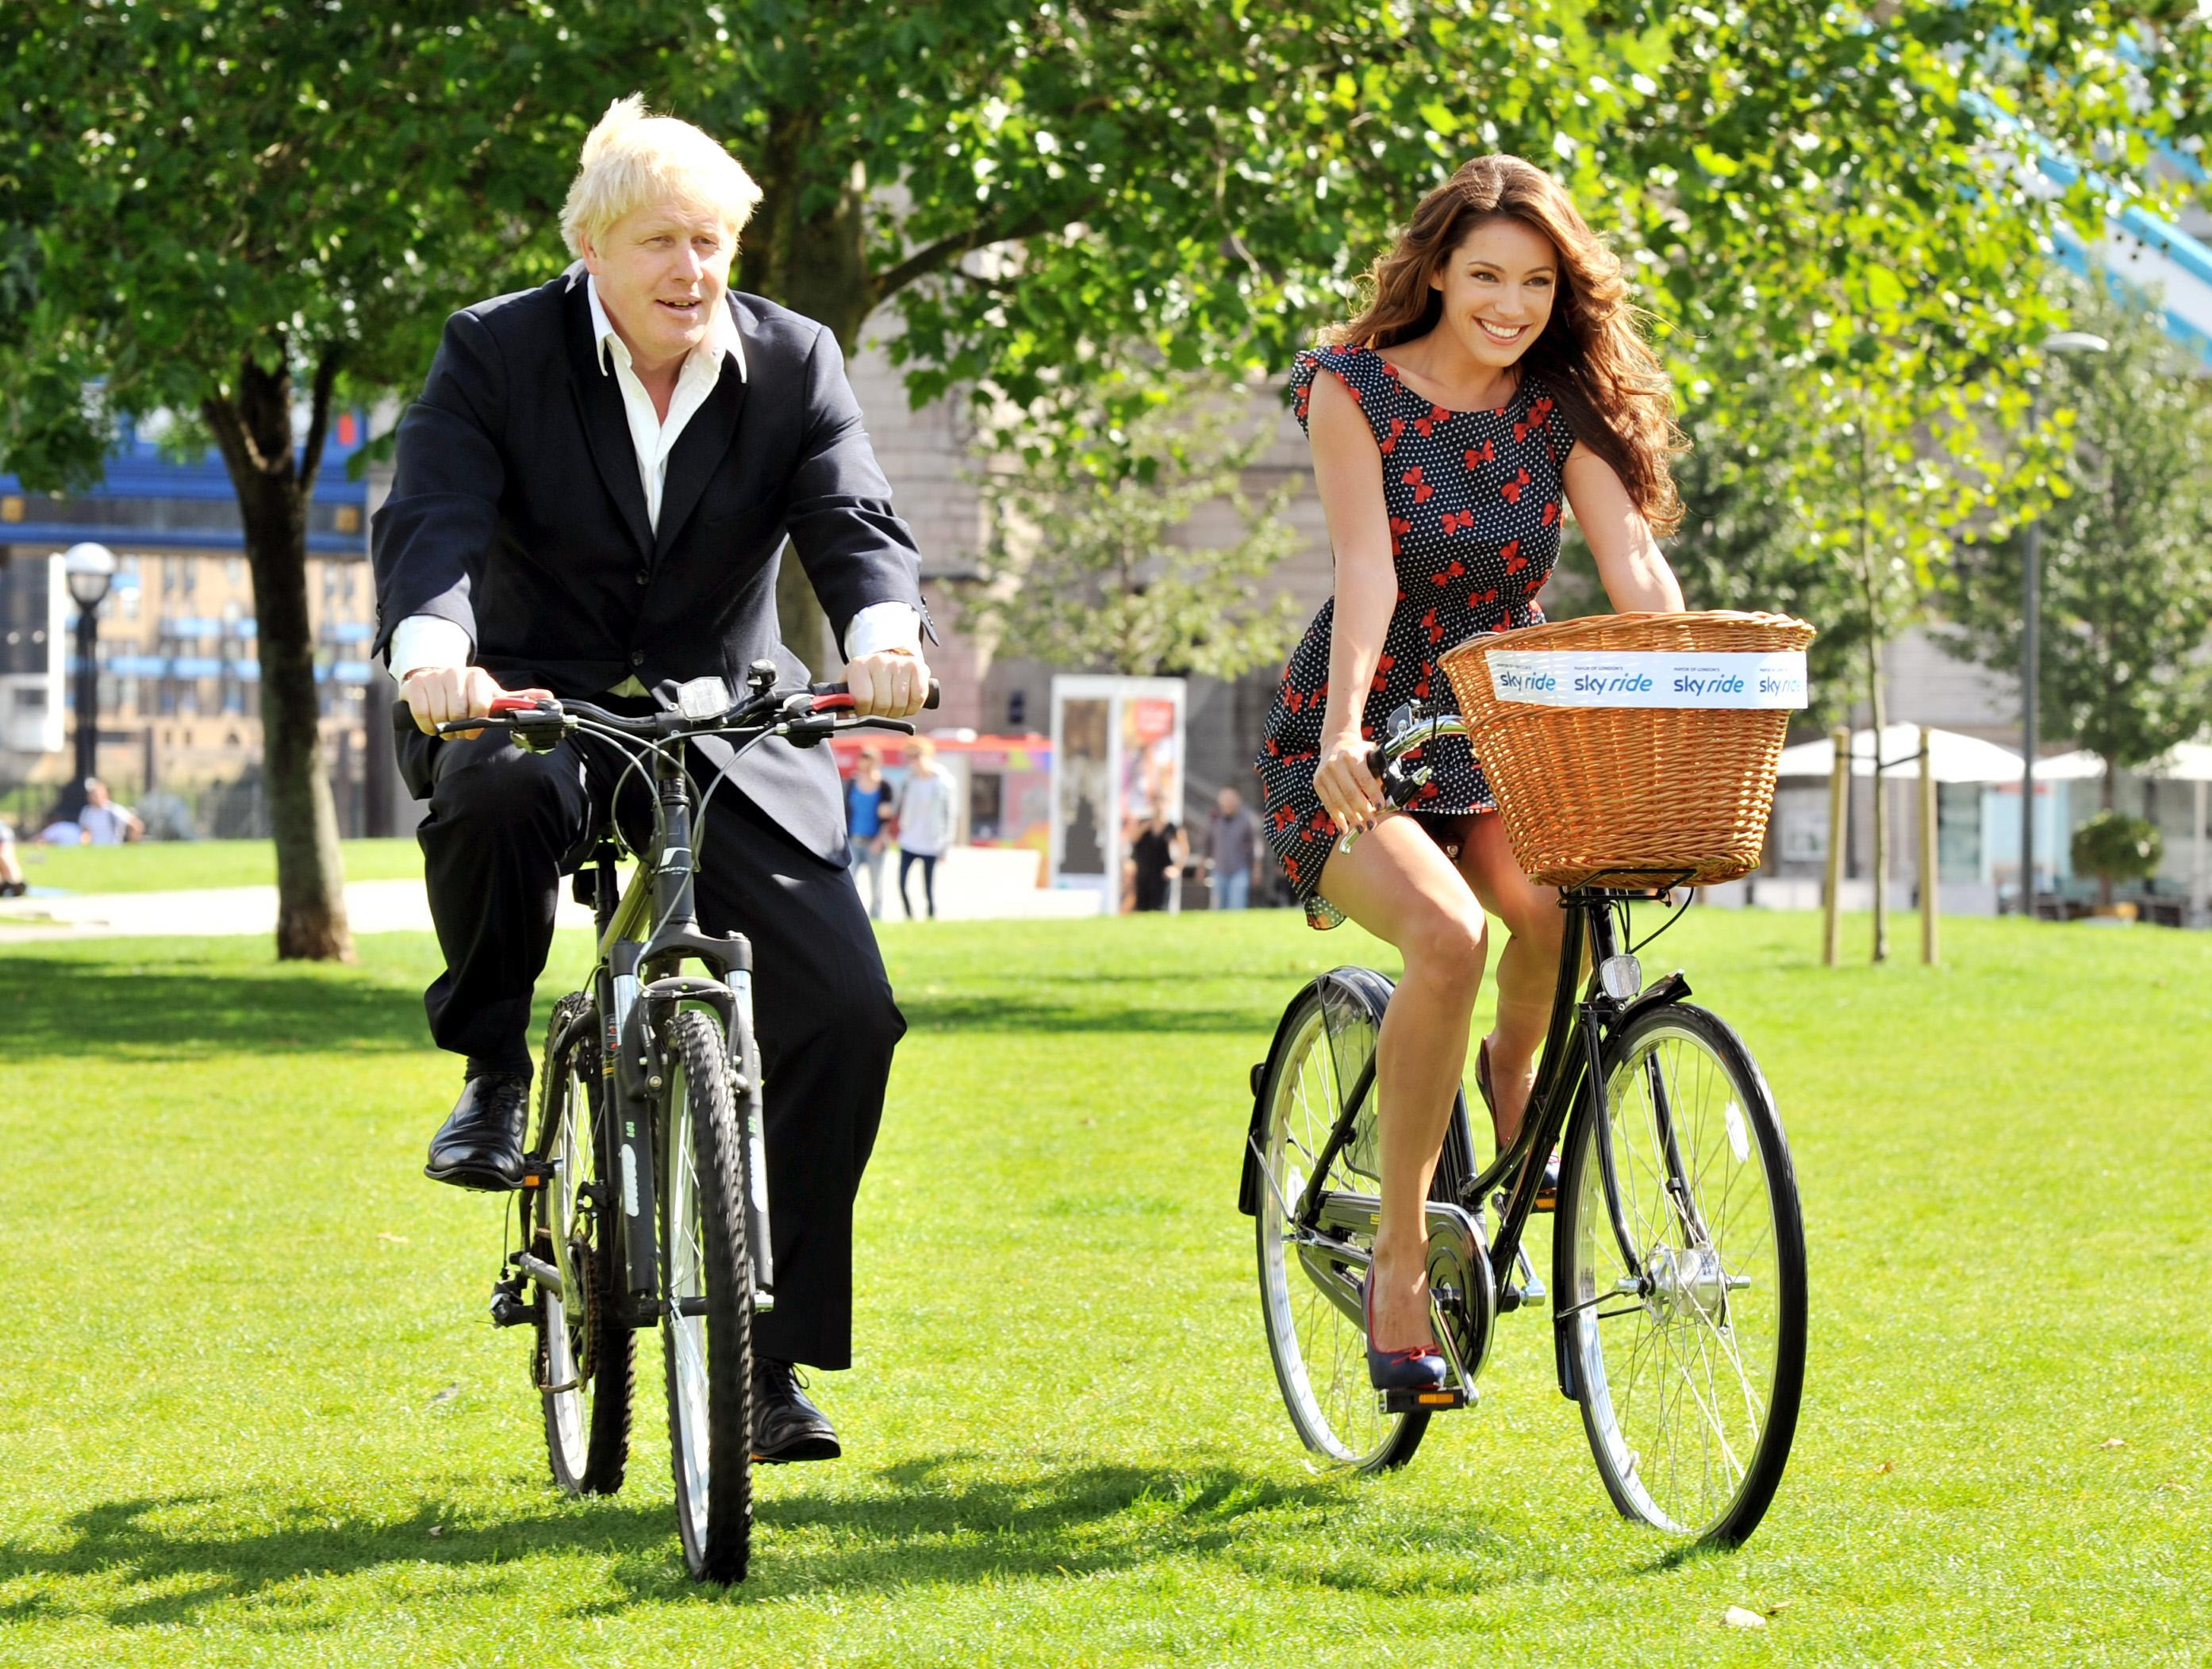 The Mayor of London Boris Johnson accompanied by Kelly Brook riding bicycles in central London to promote the London Skyride, this morning.